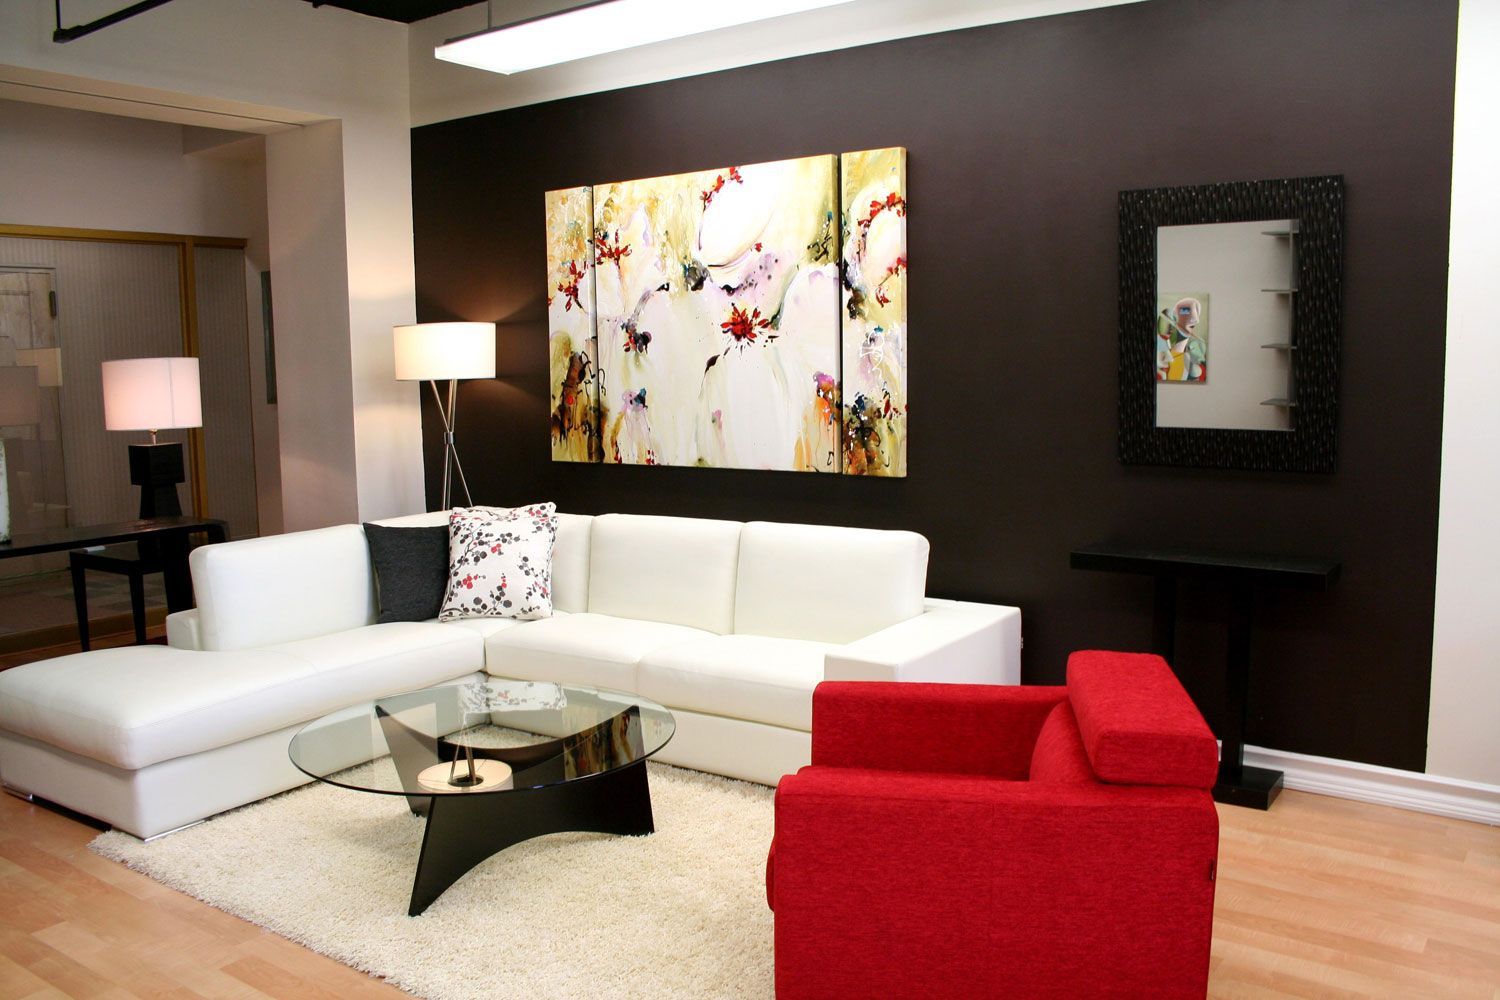 Modern living room wall decor ideas - Explore Living Room Walls Living Room Ideas And More